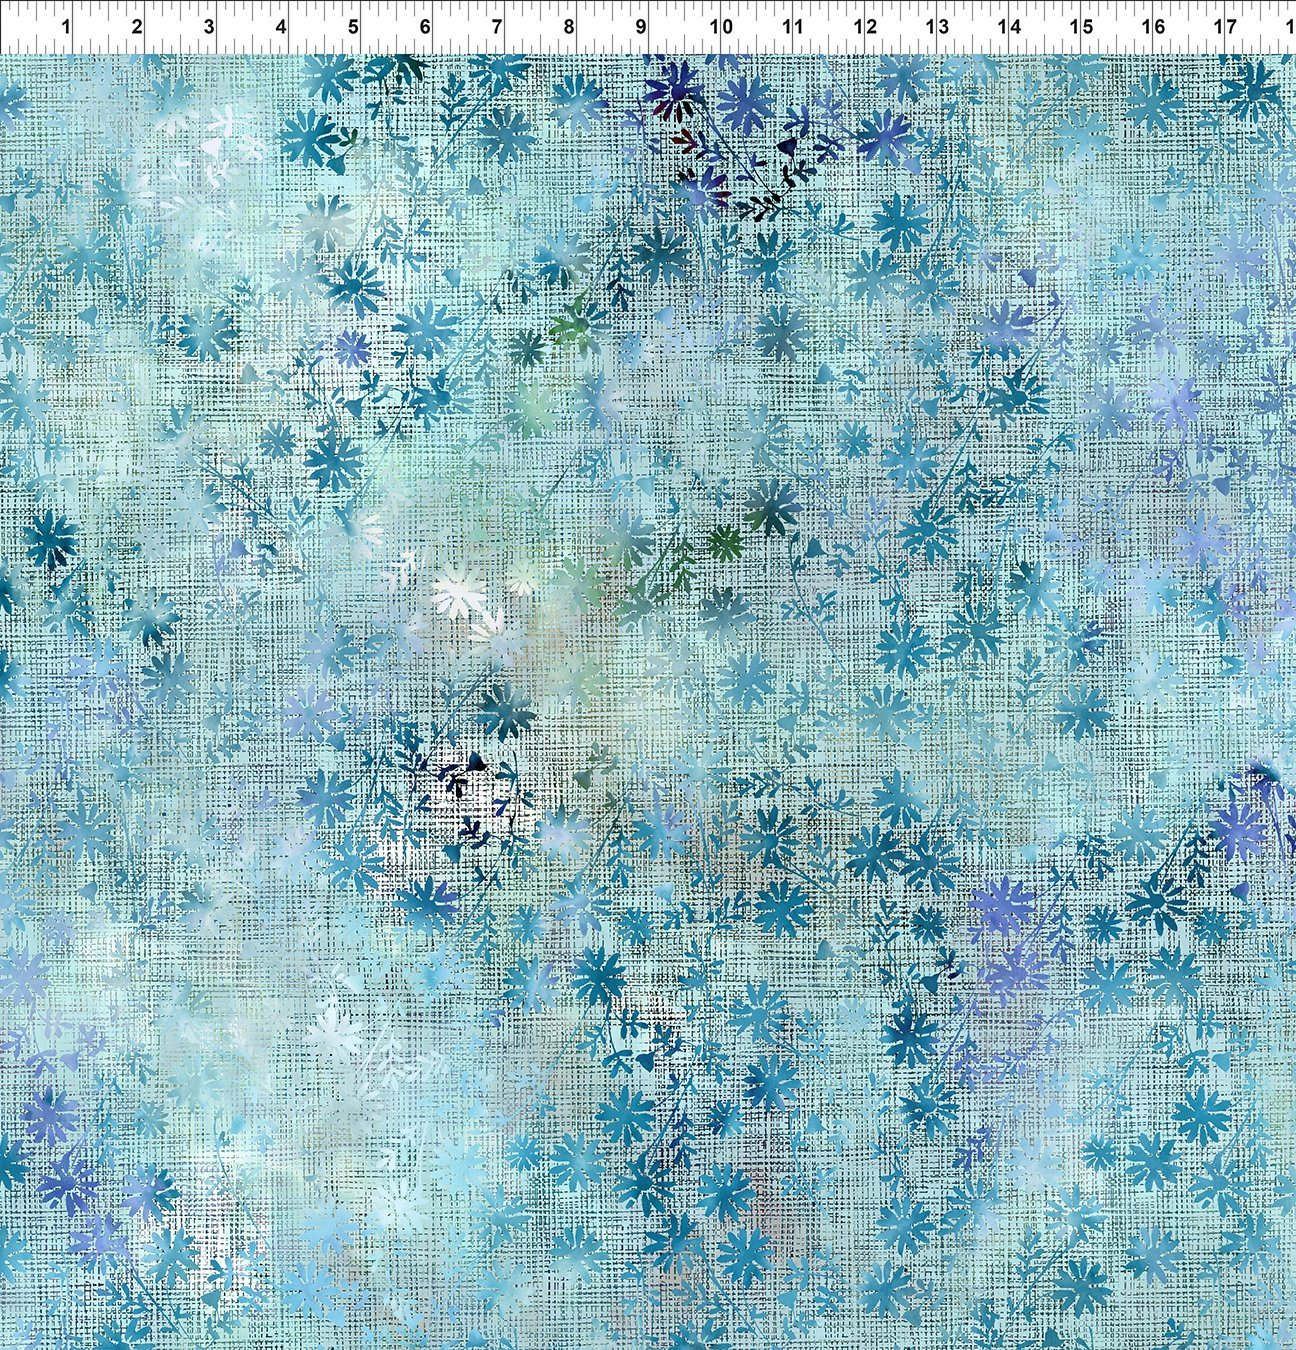 6HVN-2 Haven - Wildflower - Blue by Jason Yenter for In The Beginning Fabric